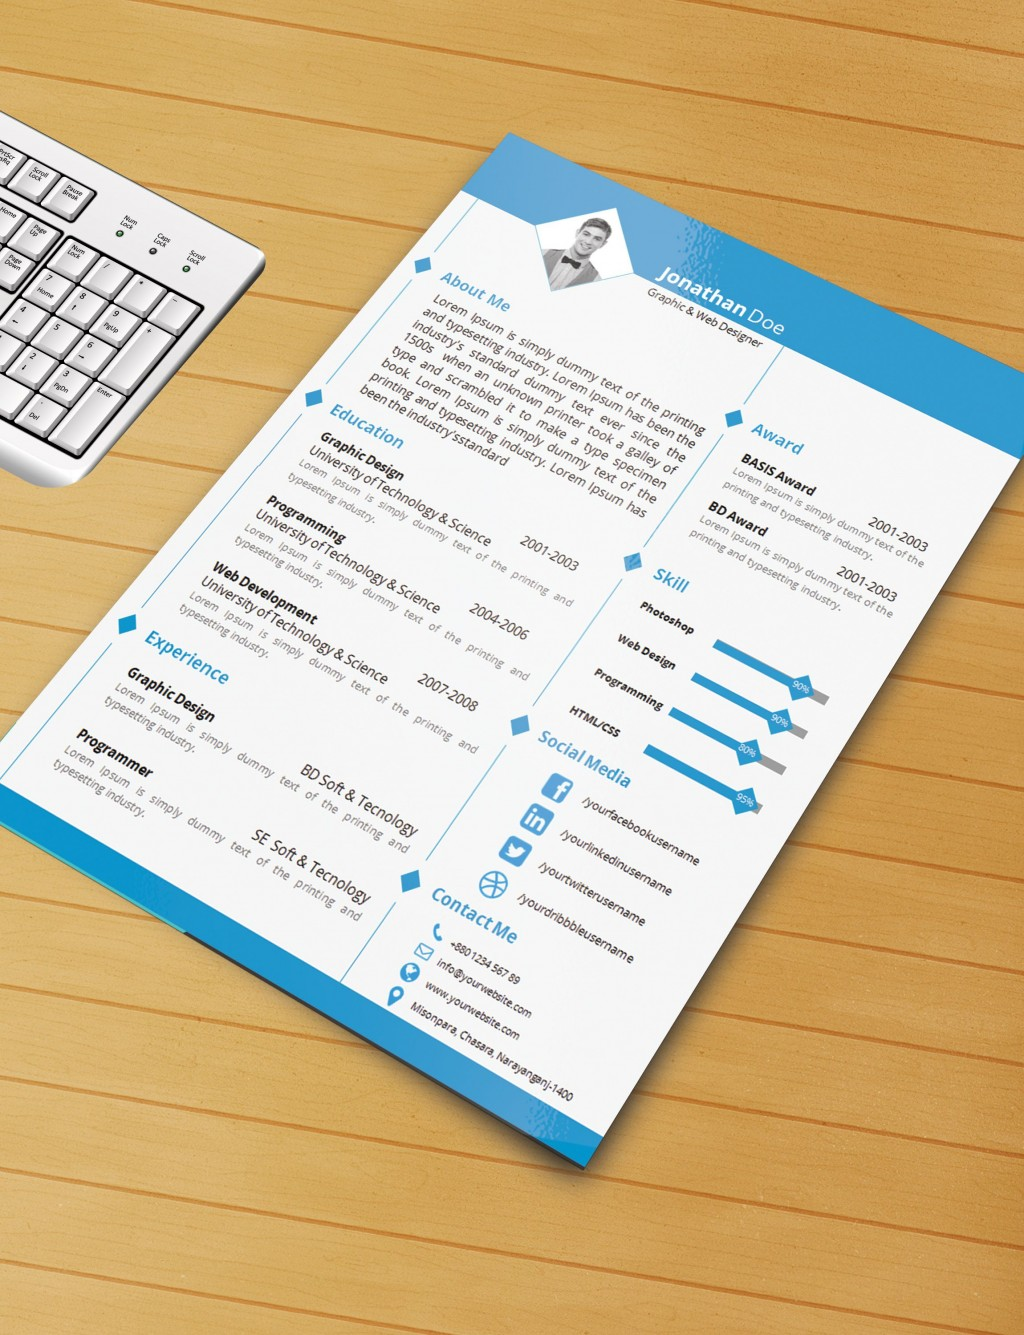 002 Frightening Microsoft Office Free Template Sample  Excel Download M PowerpointLarge